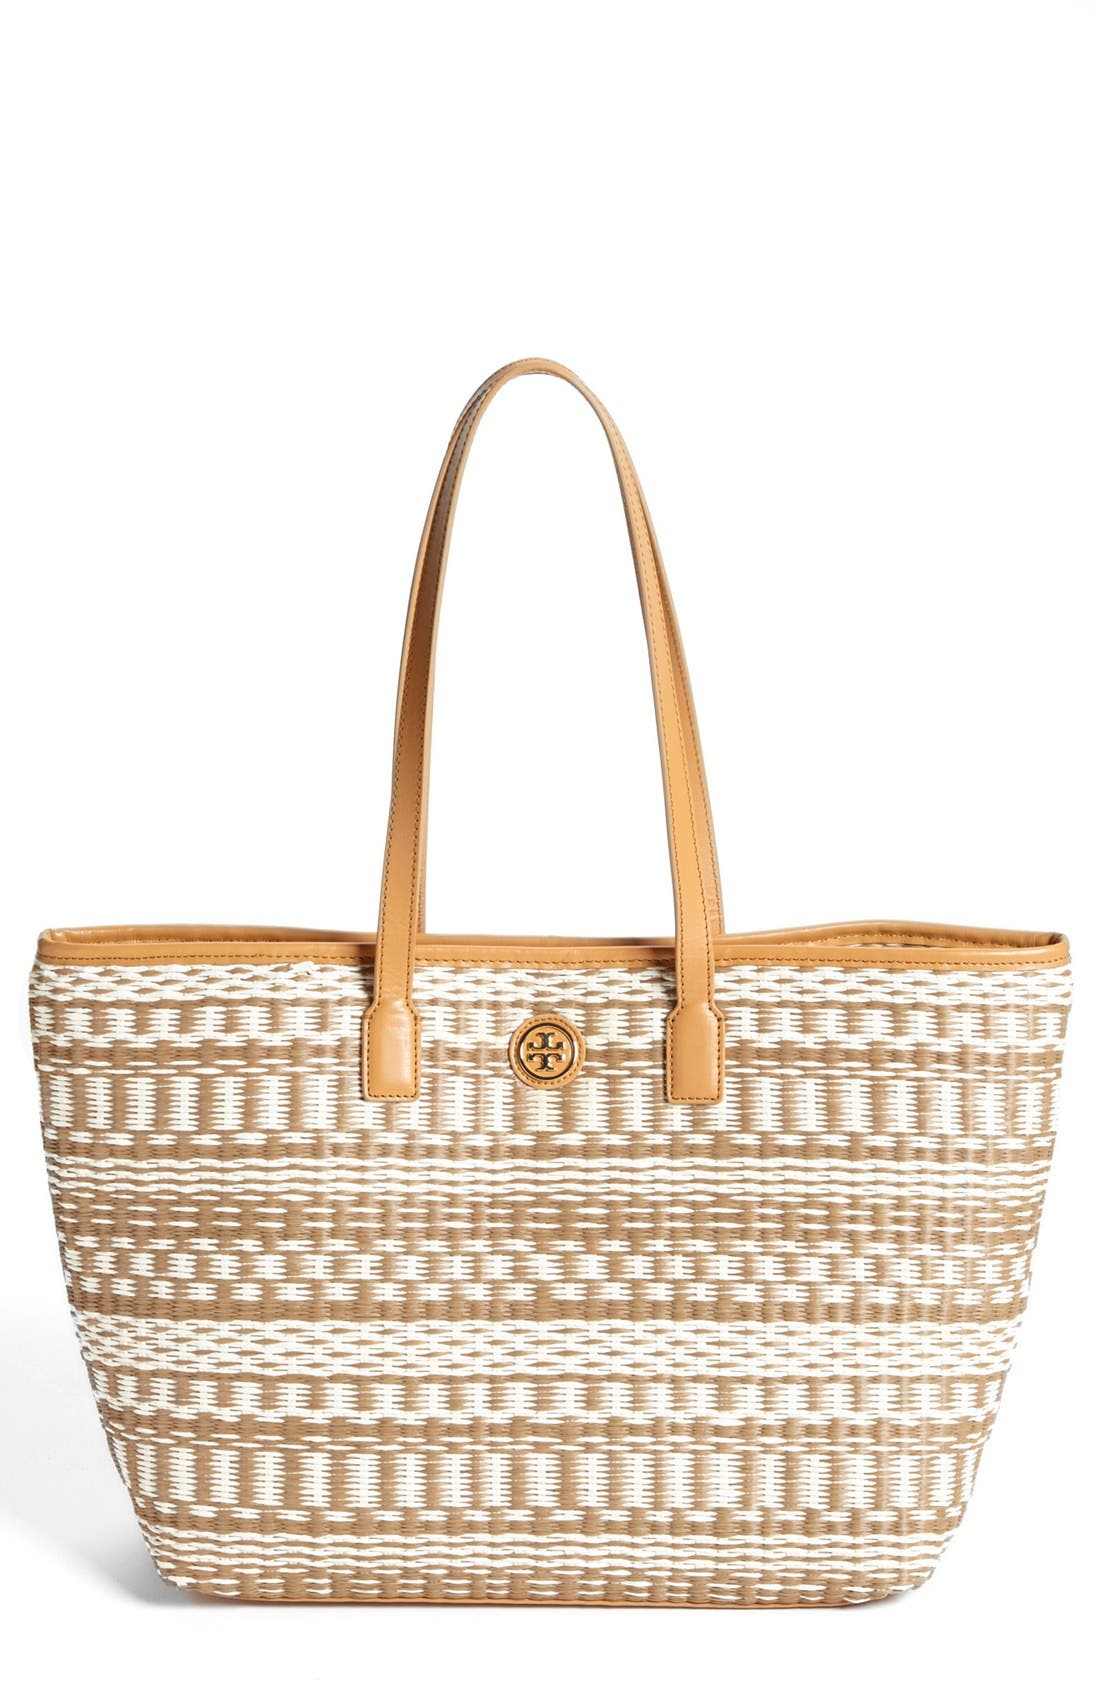 Alternate Image 1 Selected - Tory Burch 'Small Stripe' Straw Tote